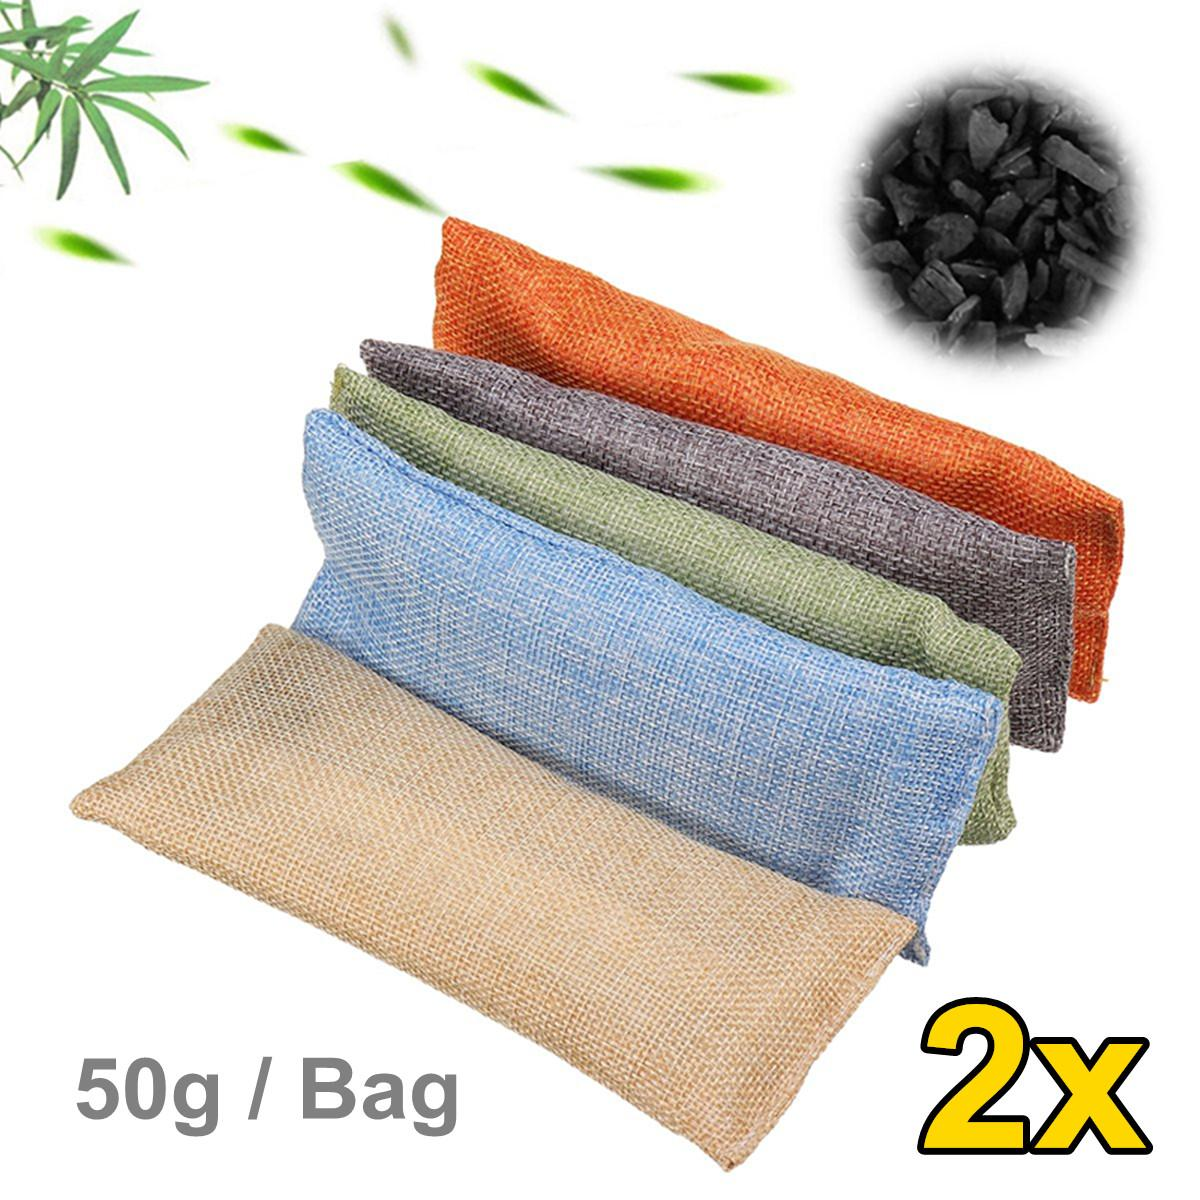 2 Bag/Set Air Purifier Bag Car Home Shoes Bamboo Charcoal Dehumidifier Odor Remover Air Purifying Bag Natural Air Freshener Bags